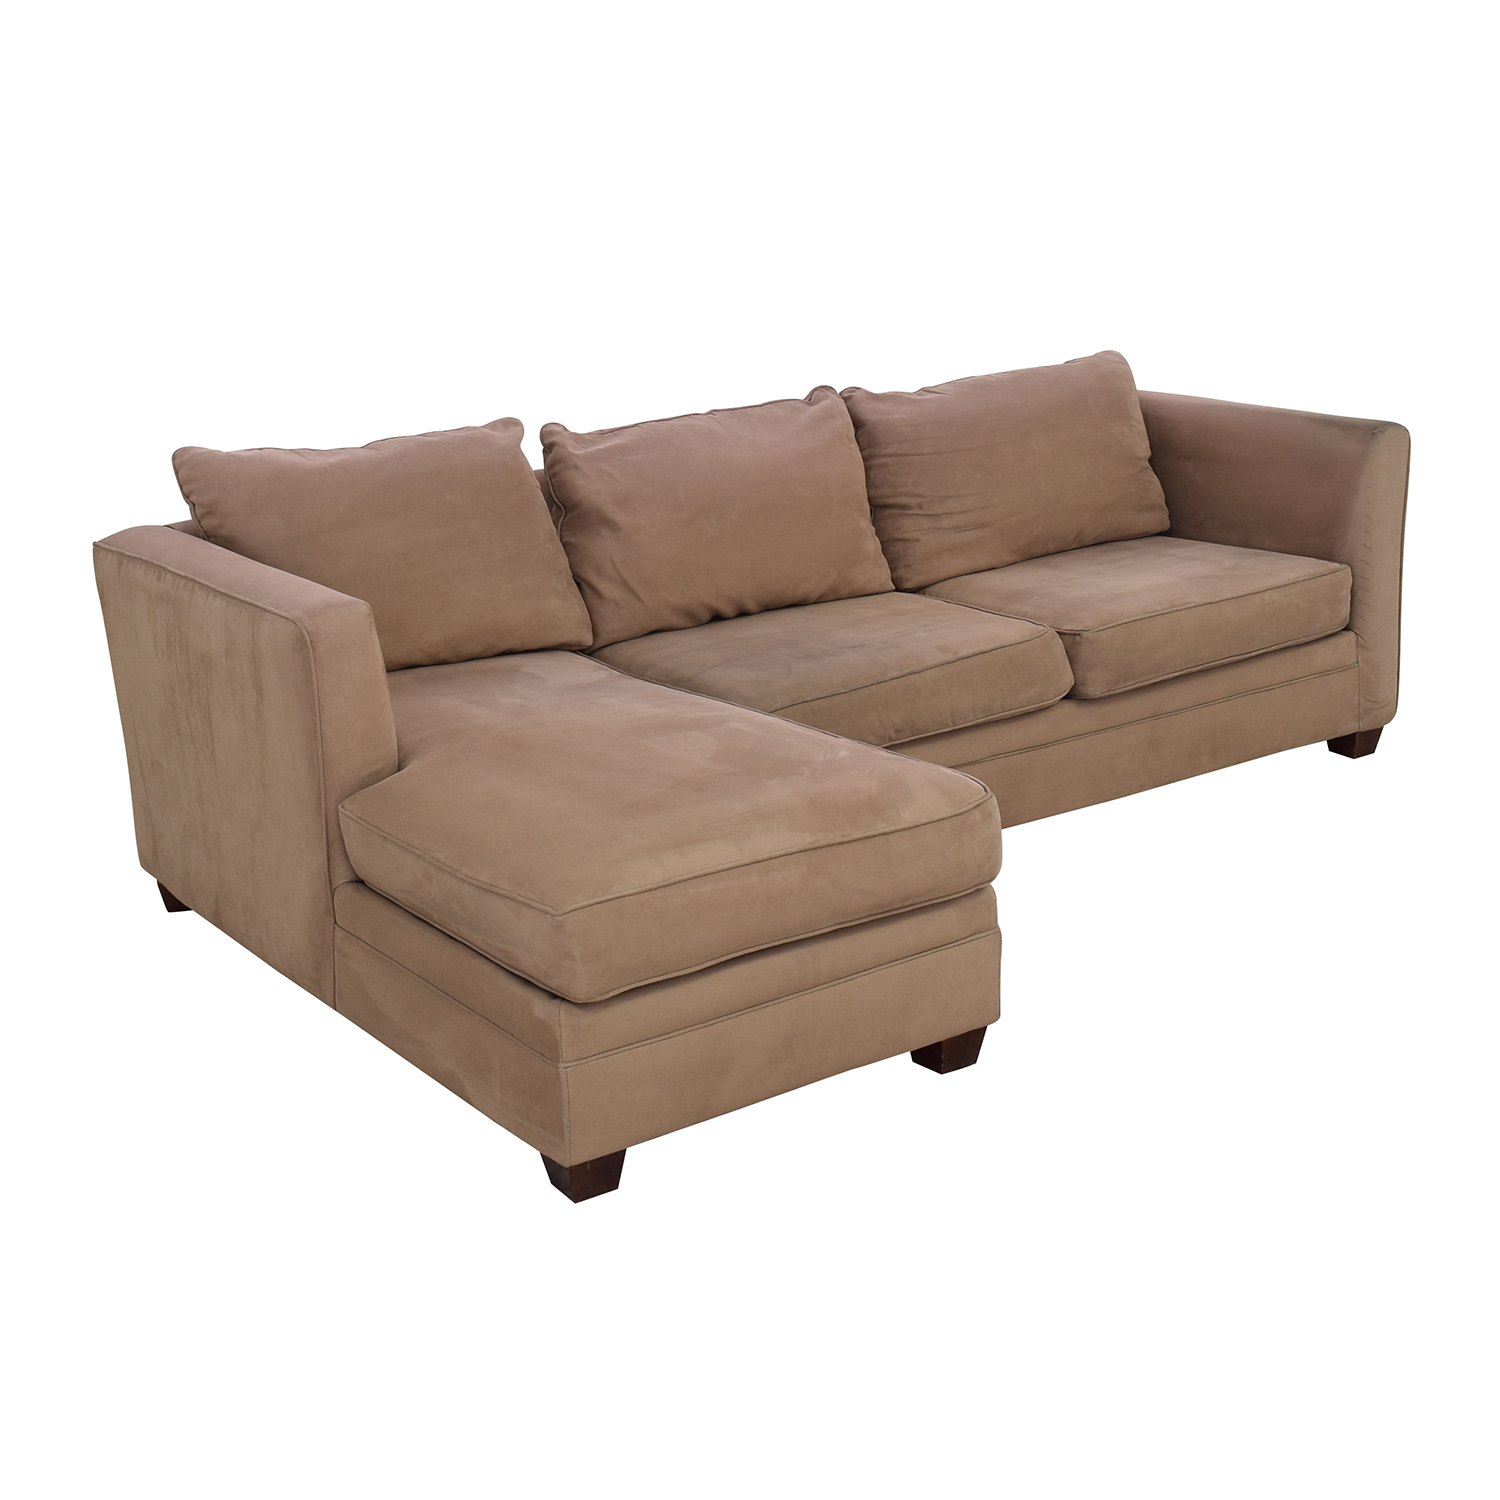 Awesome 54 Off Bauhaus Furniture Bauhaus Chaise Sectional Sofa Sofas Gmtry Best Dining Table And Chair Ideas Images Gmtryco